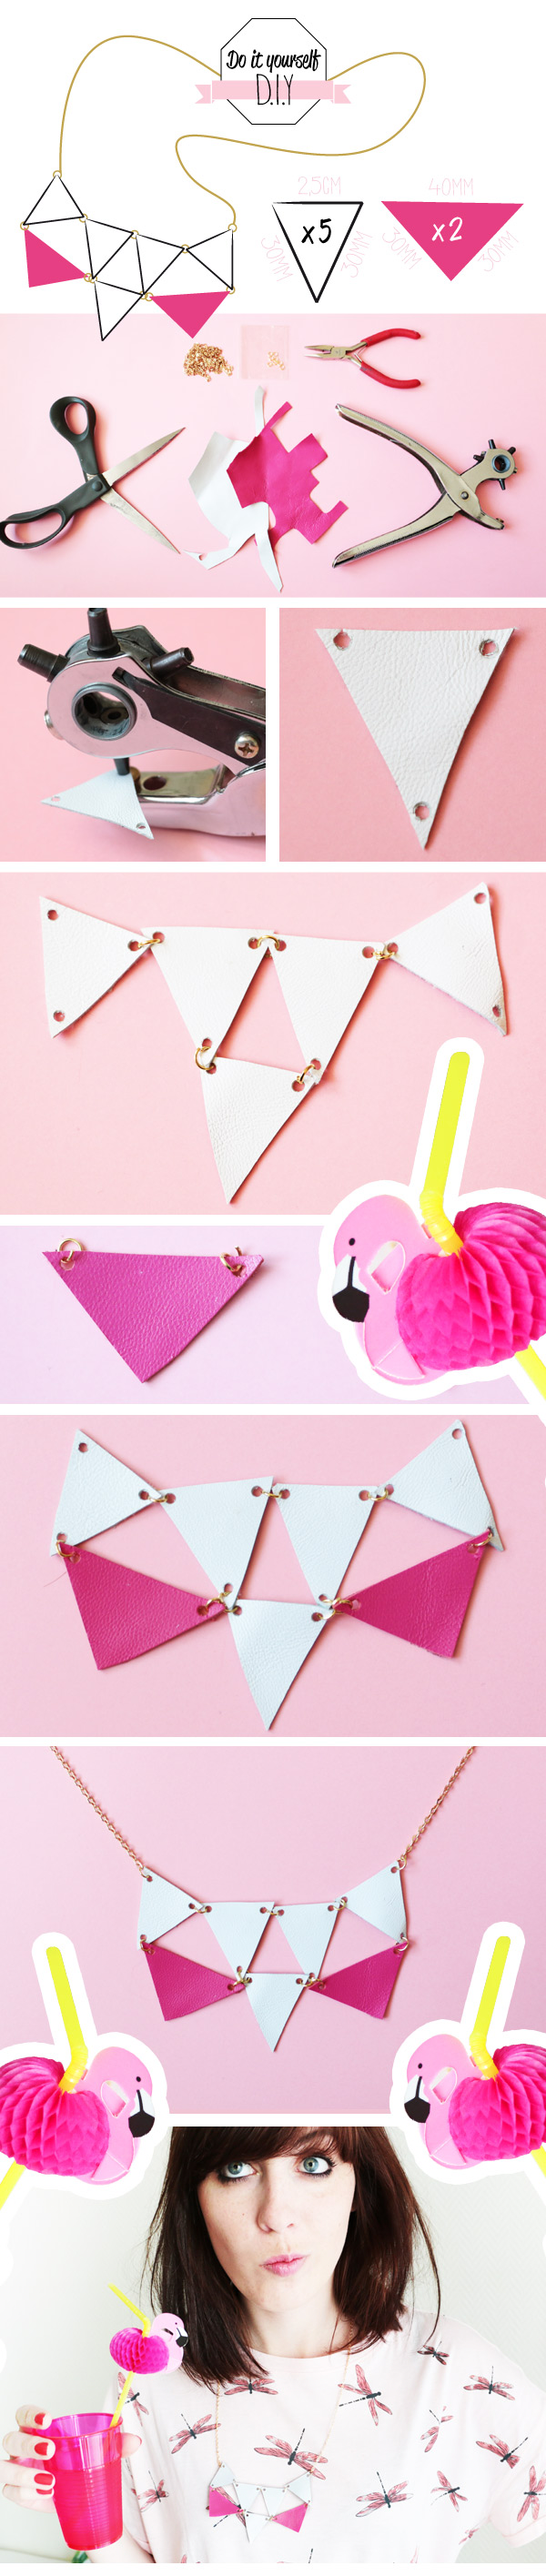 diy-collier-triangle_02